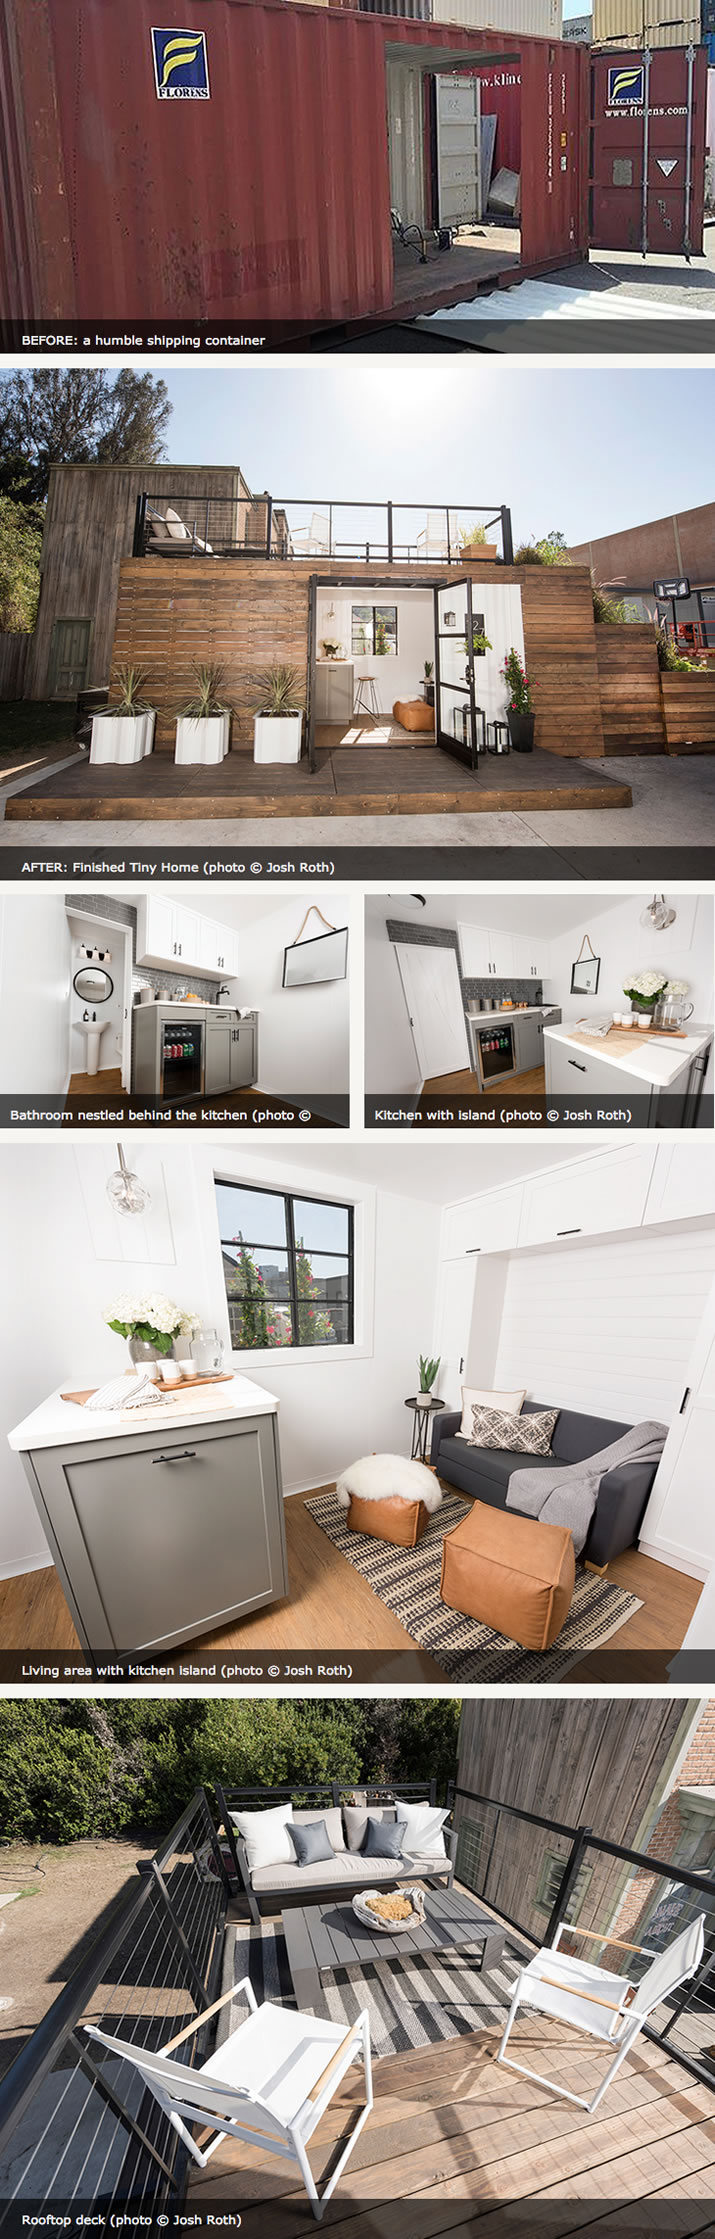 Kelly Edwards' Tiny Home: Shipping container turned elegant living space with rooftop deck